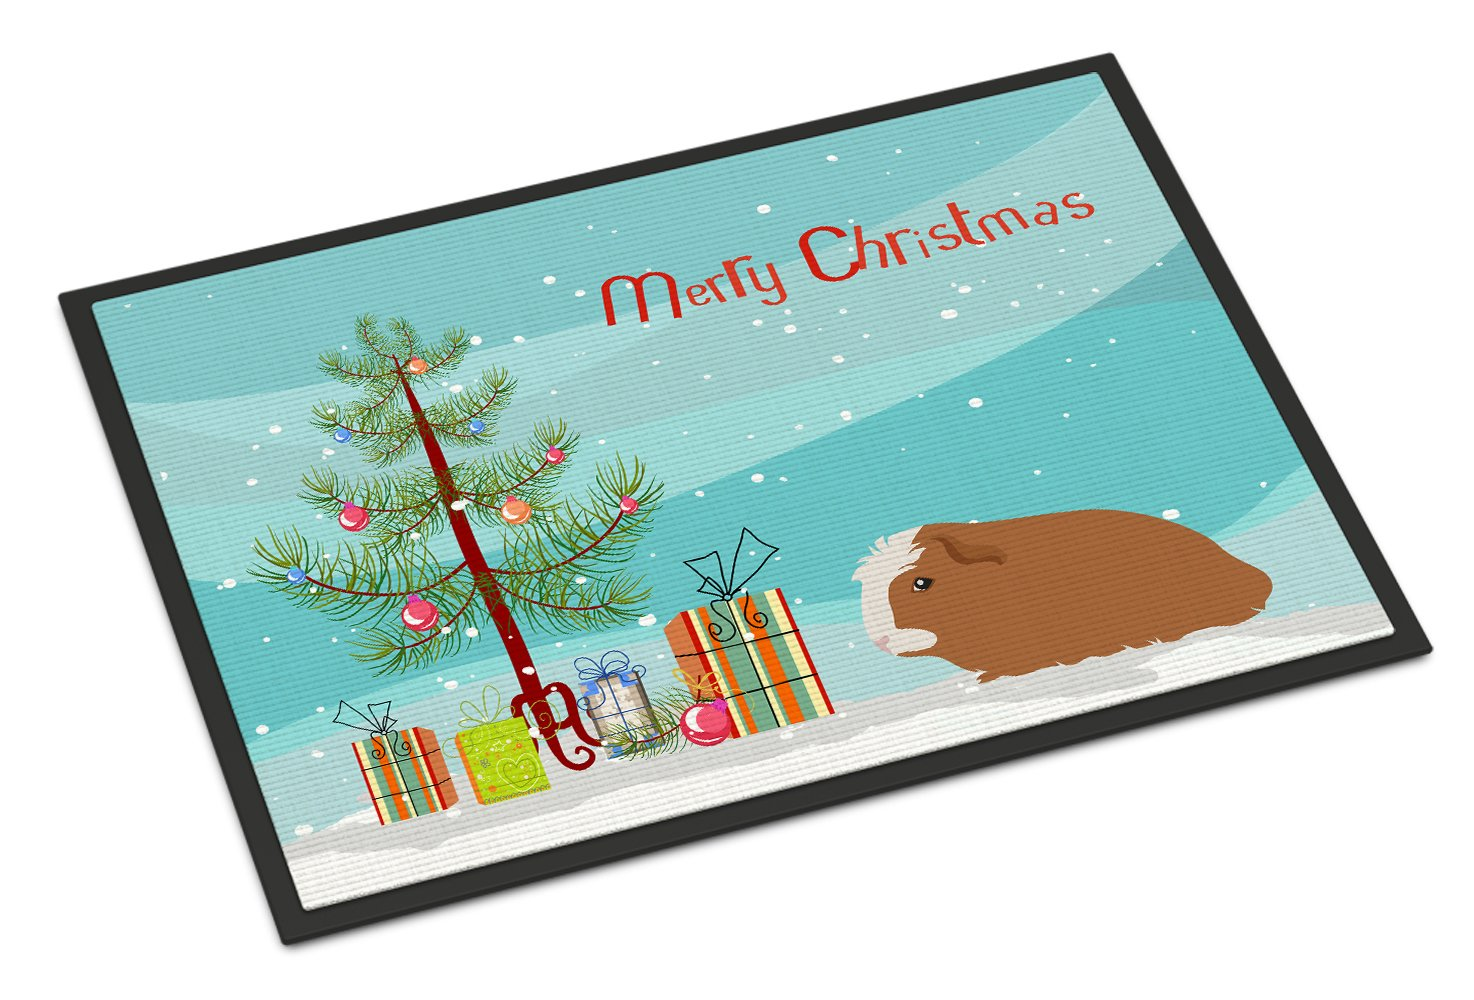 Crested Guinea Pig Merry Christmas Indoor or Outdoor Mat 24x36 CK4440JMAT by Caroline's Treasures